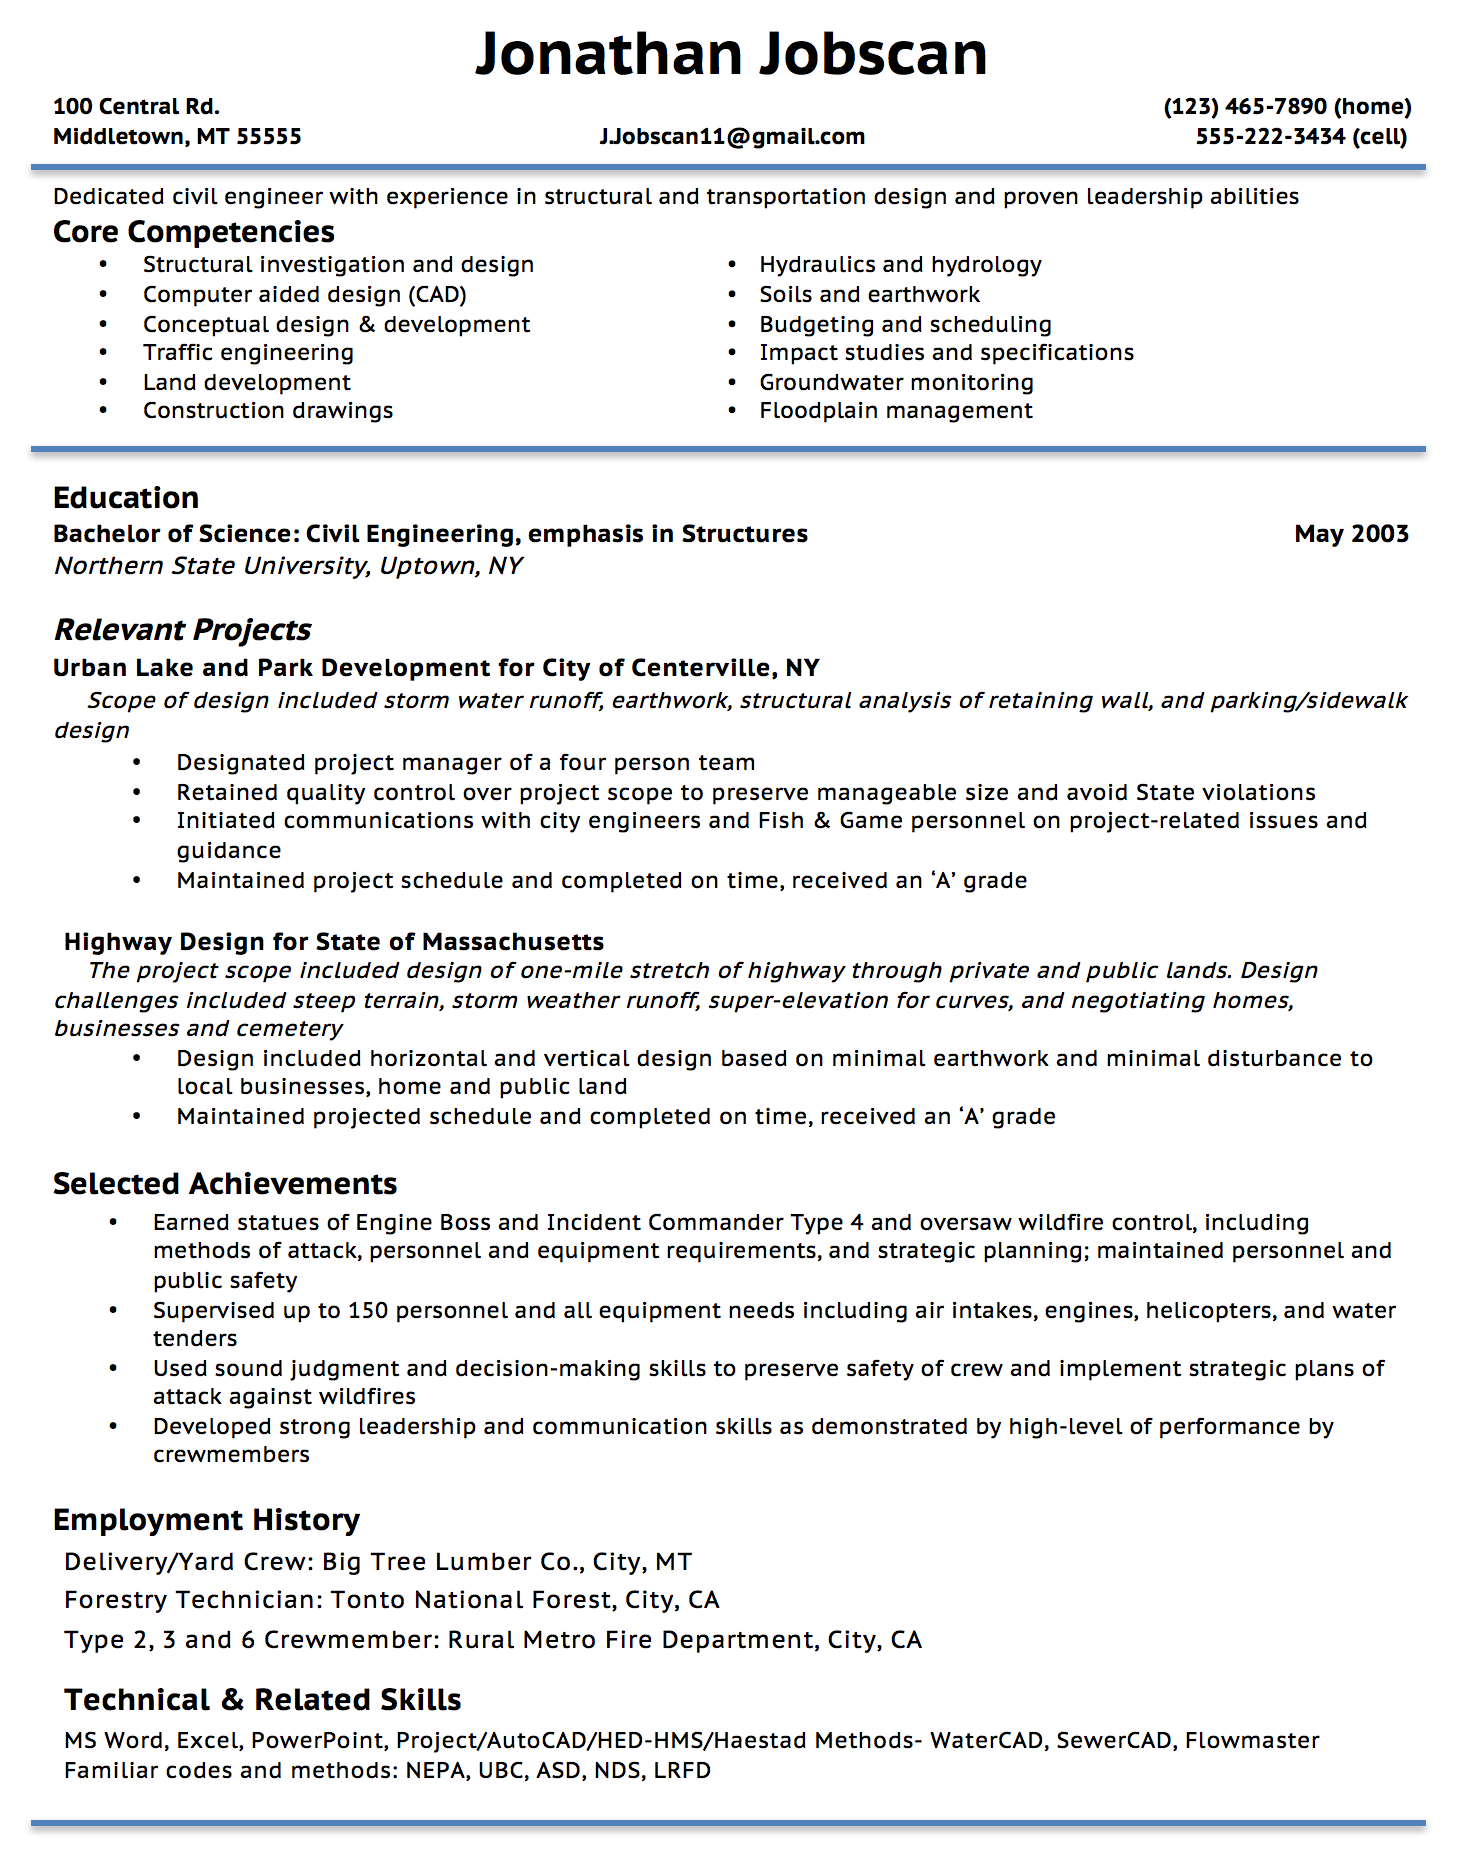 Opposenewapstandardsus  Picturesque Resume Writing Guide  Jobscan With Hot Example Of A Functional Resume Format With Agreeable Employment History Resume Also List Of Skills To Add To Resume In Addition Functional Resume Template Pdf And Chronological Resume Vs Functional Resume As Well As Customer Care Resume Additionally Mechanical Design Engineer Resume From Jobscanco With Opposenewapstandardsus  Hot Resume Writing Guide  Jobscan With Agreeable Example Of A Functional Resume Format And Picturesque Employment History Resume Also List Of Skills To Add To Resume In Addition Functional Resume Template Pdf From Jobscanco